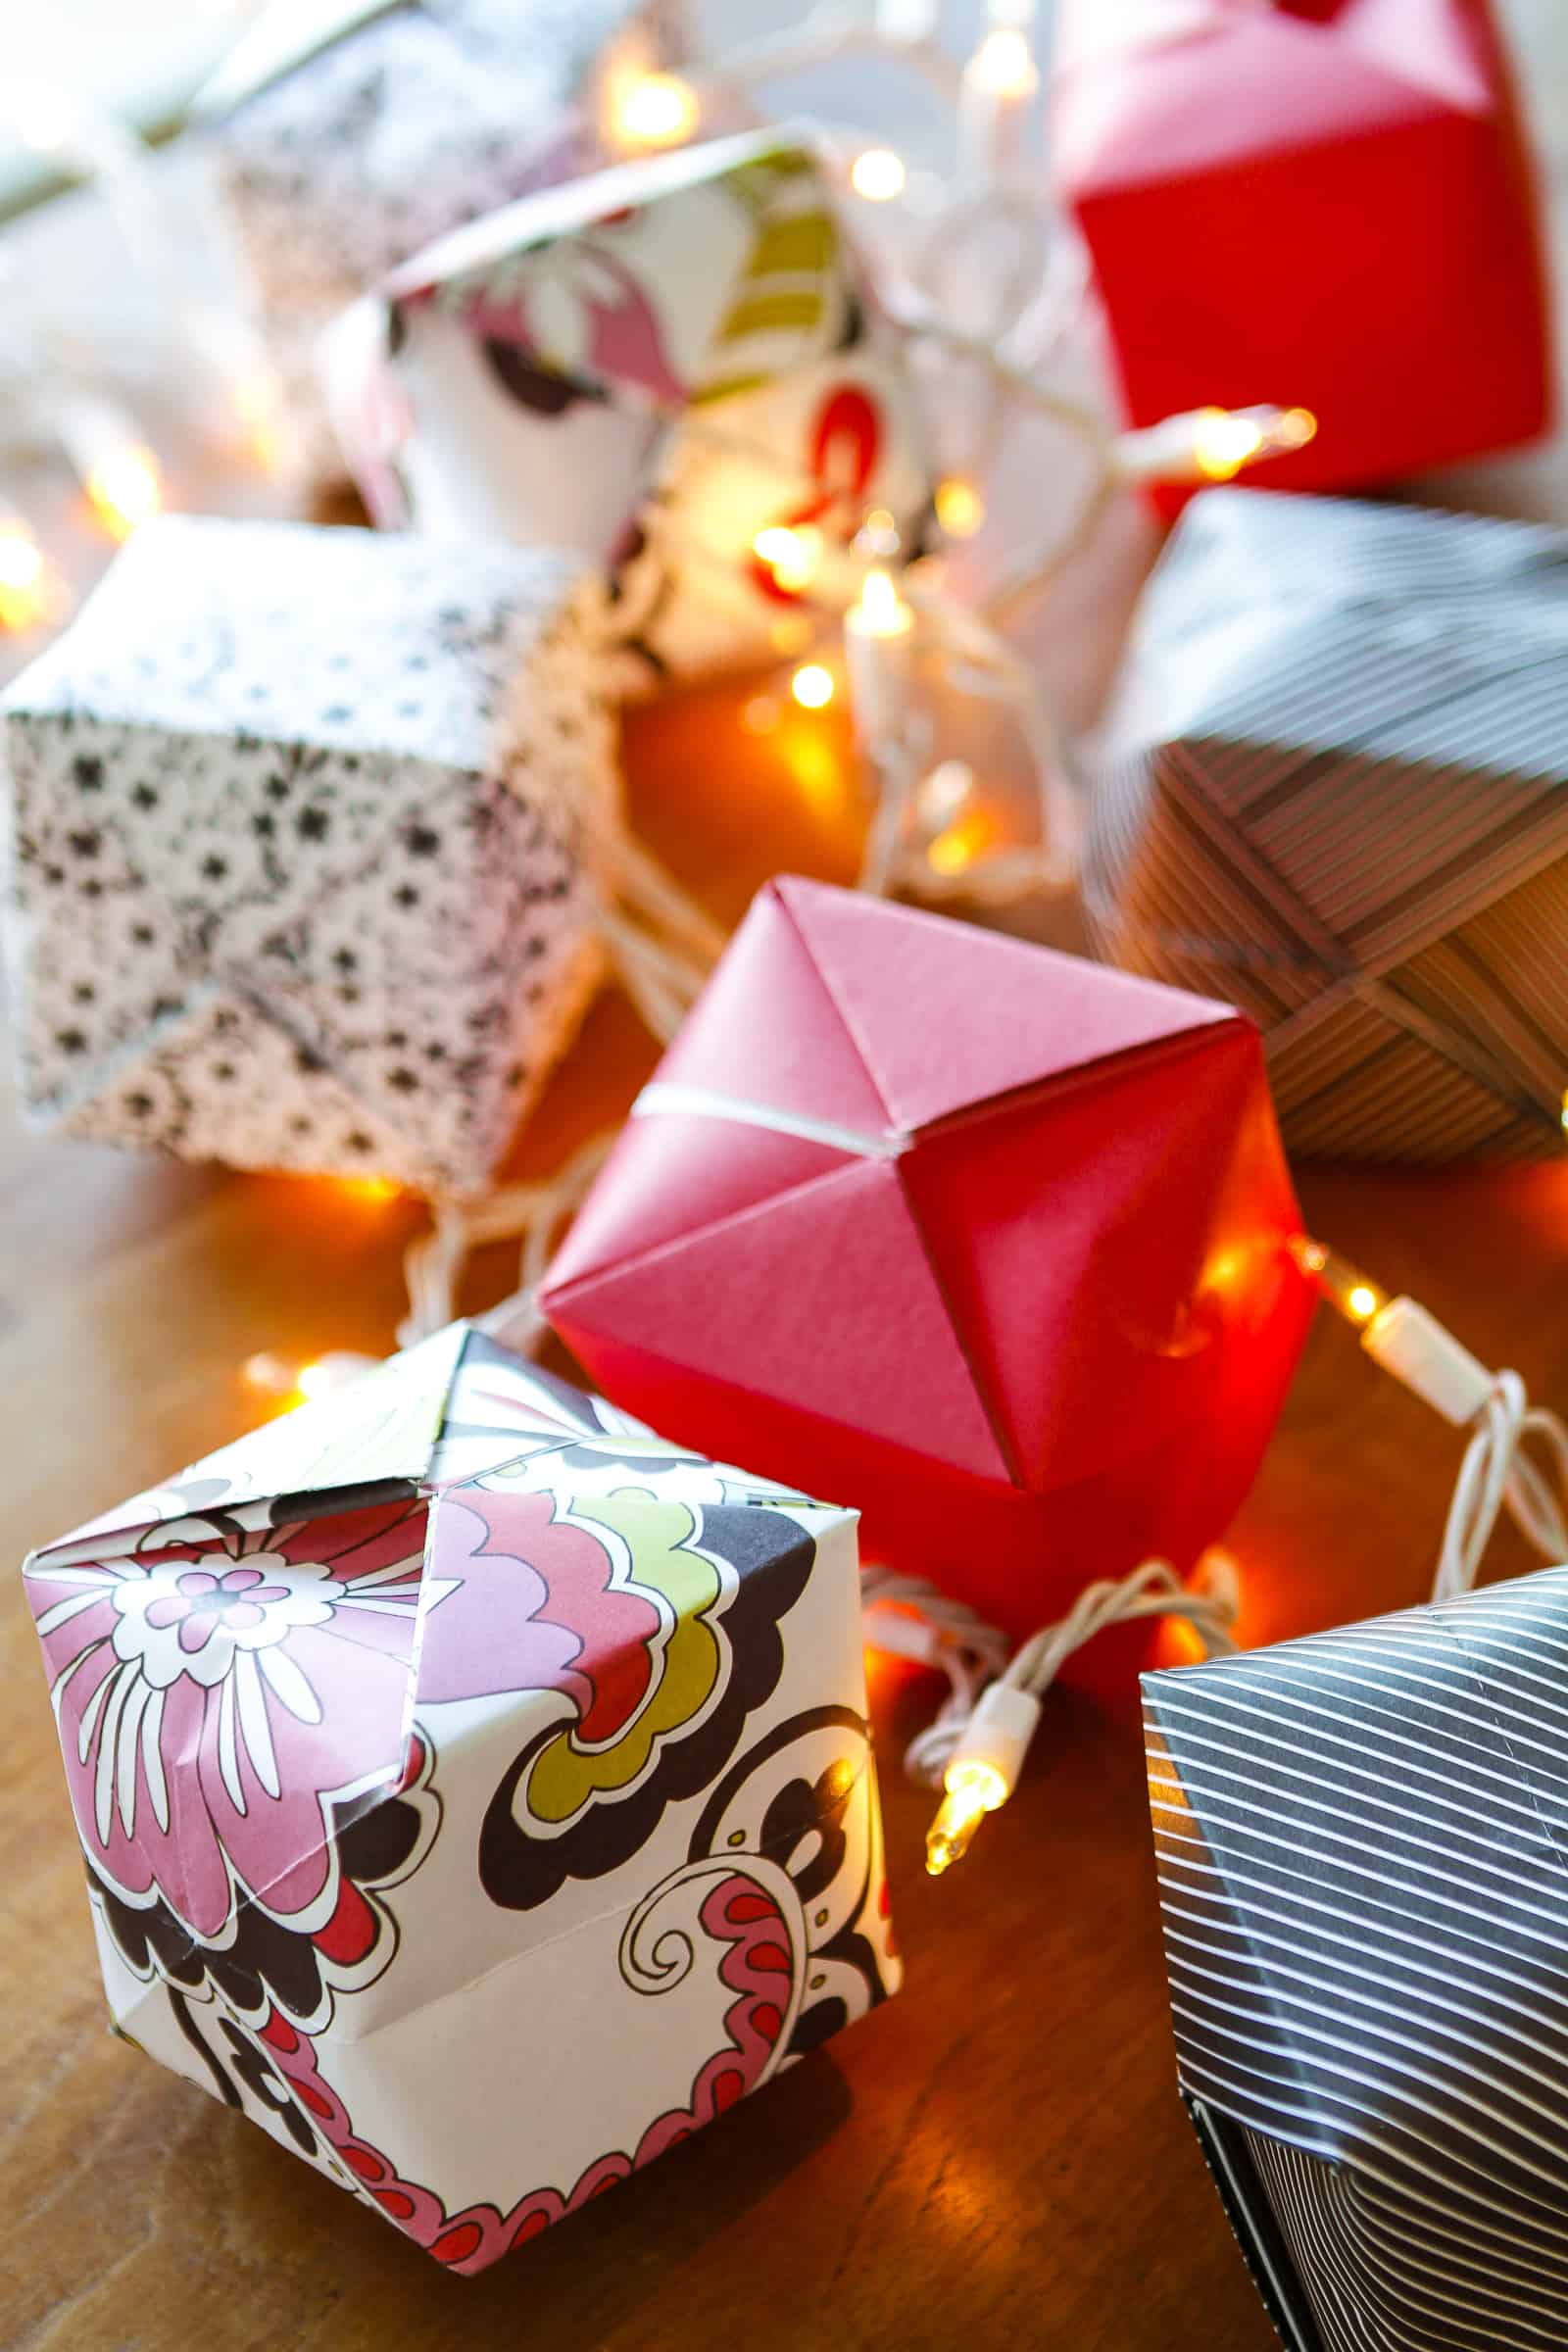 Origami Lights -- transform the classic Chinese water bomb into origami light covers to create these gorgeous origami string lights, a beautiful and festive lighting option! Not just for Chinese New Year, they're a great option for indoor or outdoor parties, weddings, baby showers, Christmas, you name it... | paper crafts | easy crafts | origami water bomb instructions | paper balloon lanterns | party lights | find the tutorial on unsophisticook.com